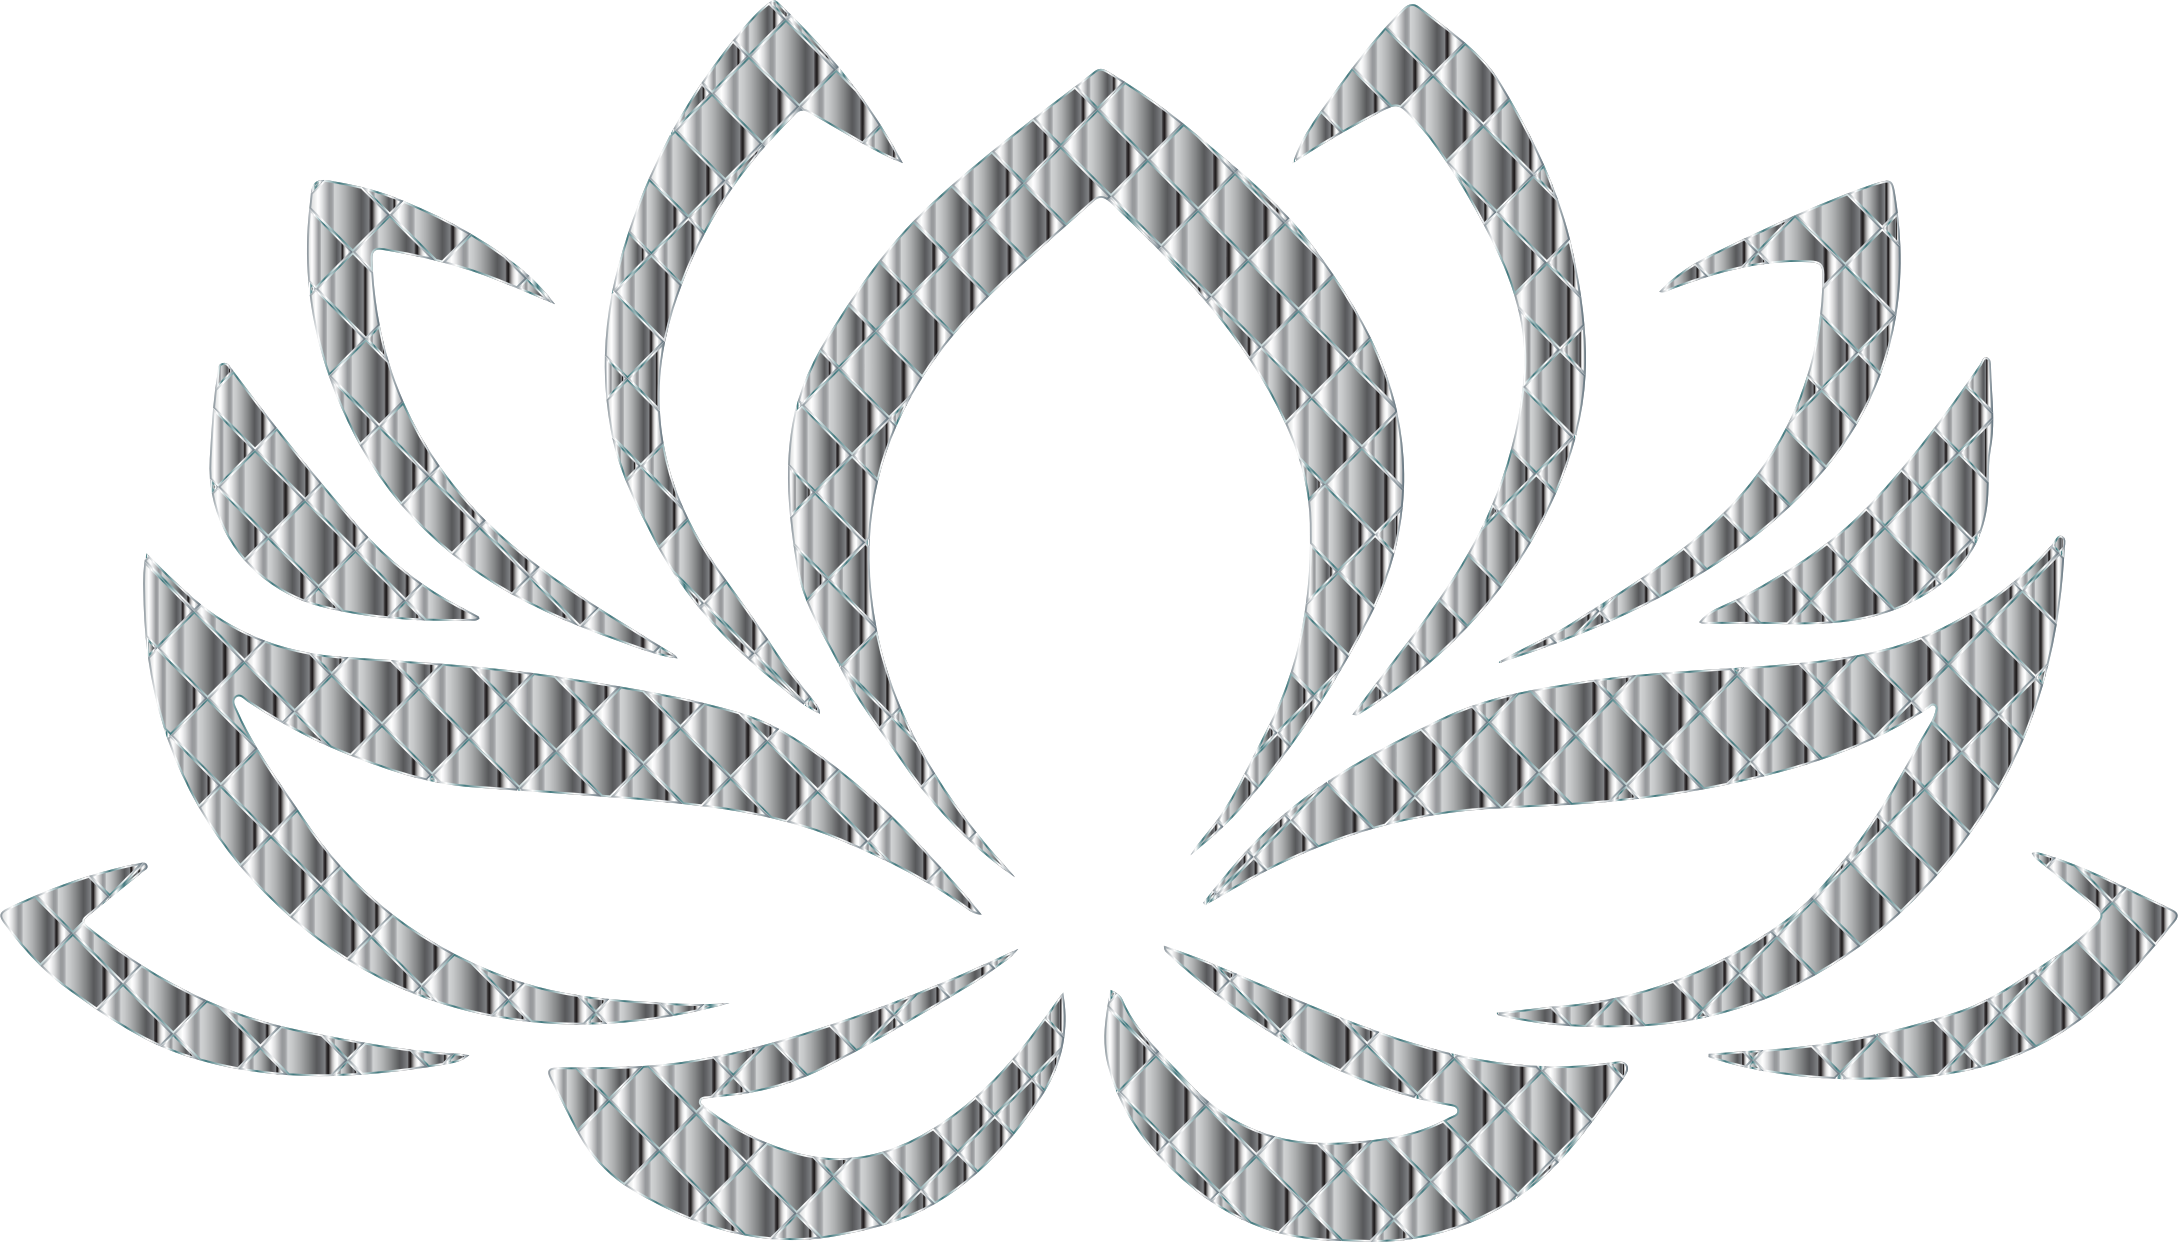 Flower clipart black background. Chrome lotus no icons